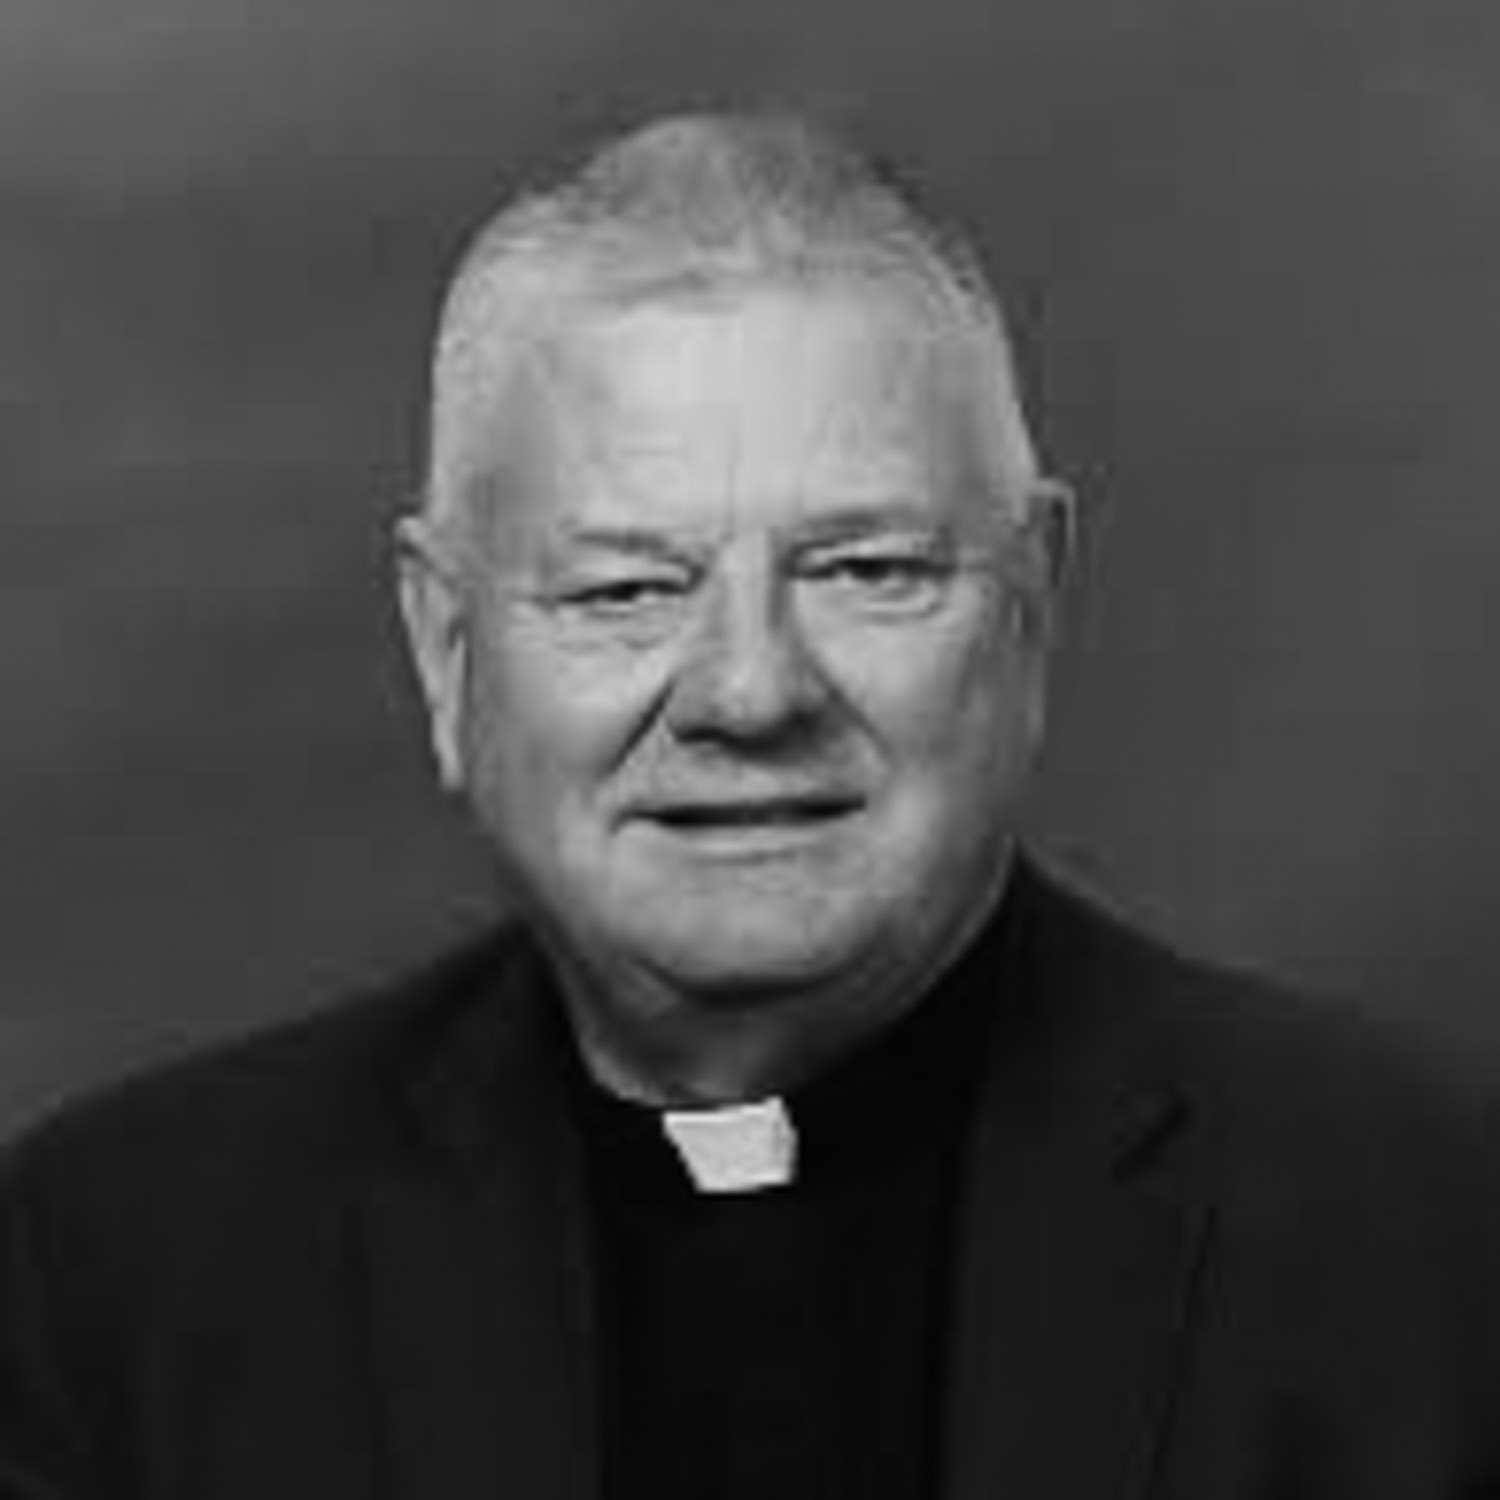 John T. Pless - (D. Litt, Concordia University, Chicago) is Assistant Professor of Pastoral Ministry and Missions and Director of Field Education at Concordia Theological Seminary in Fort Wayne, Indiana.